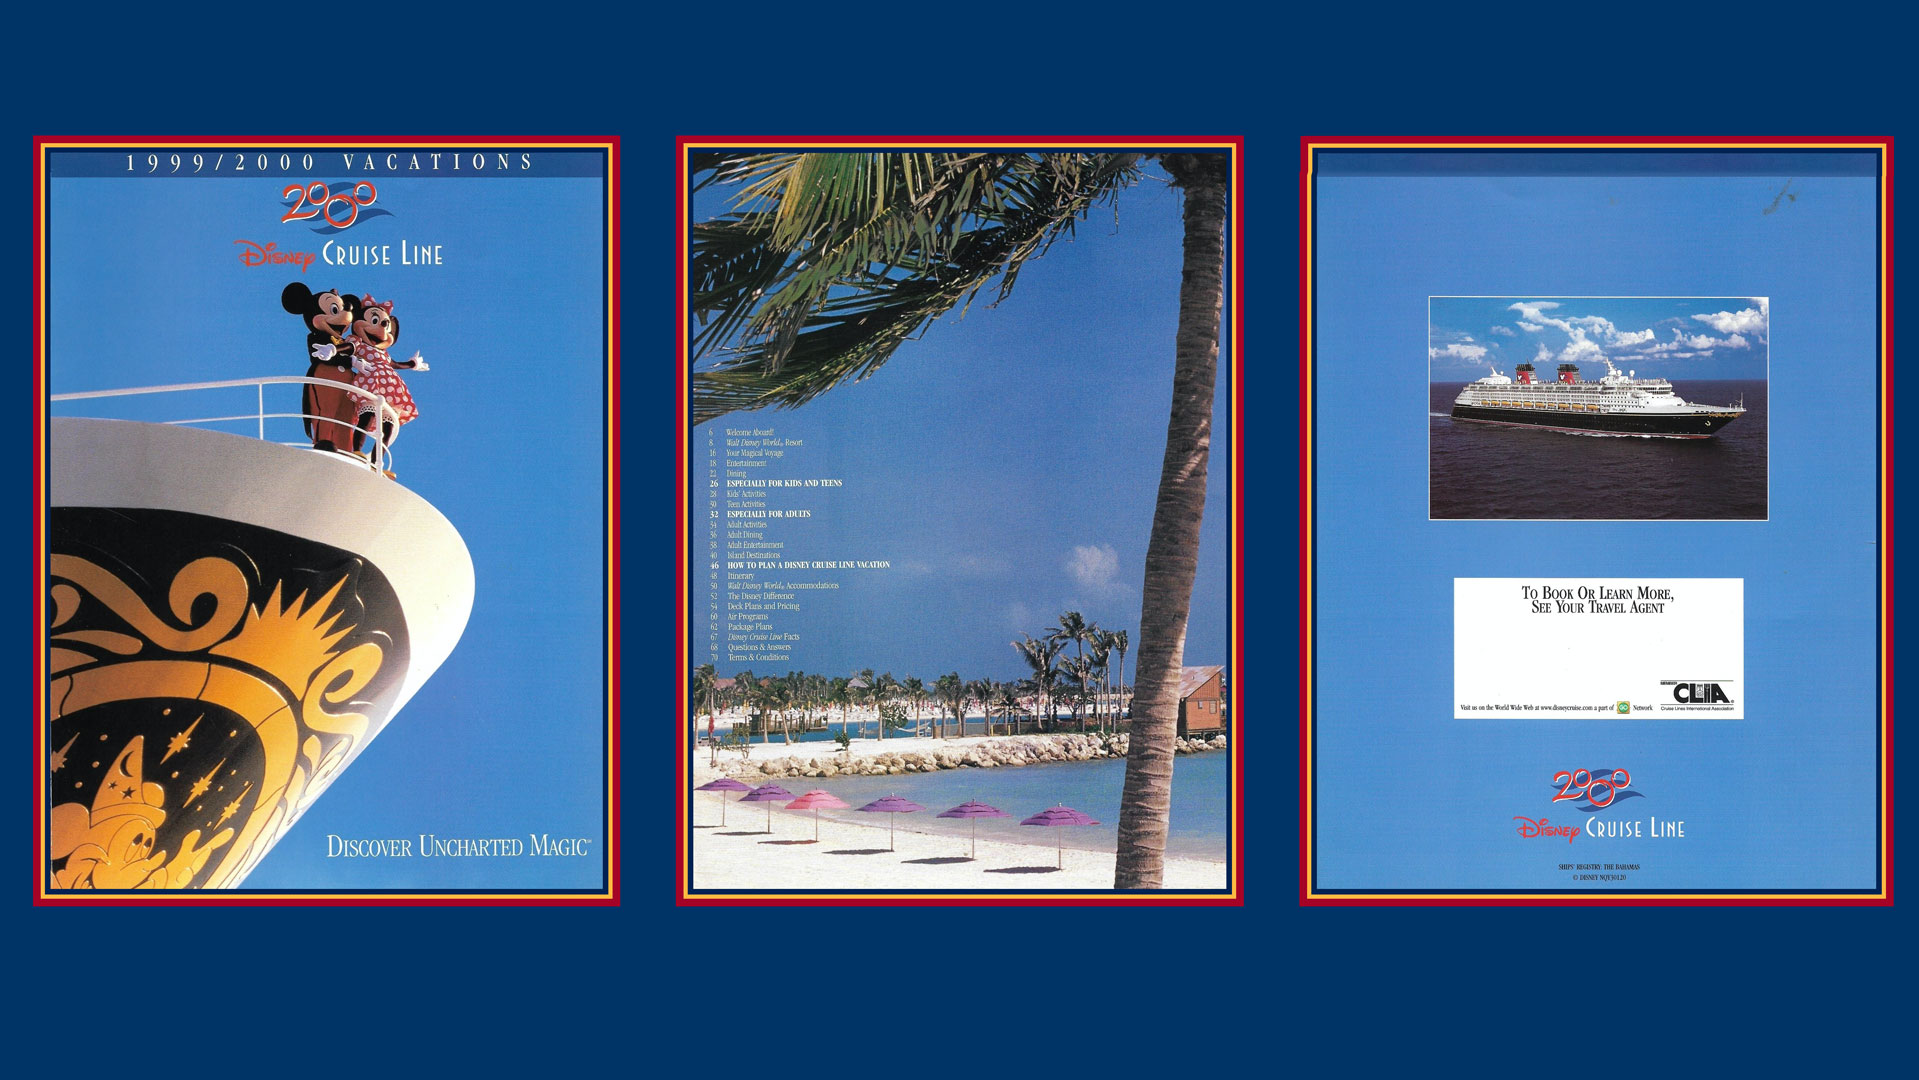 DCL 1999 2000 Vacations Brochure